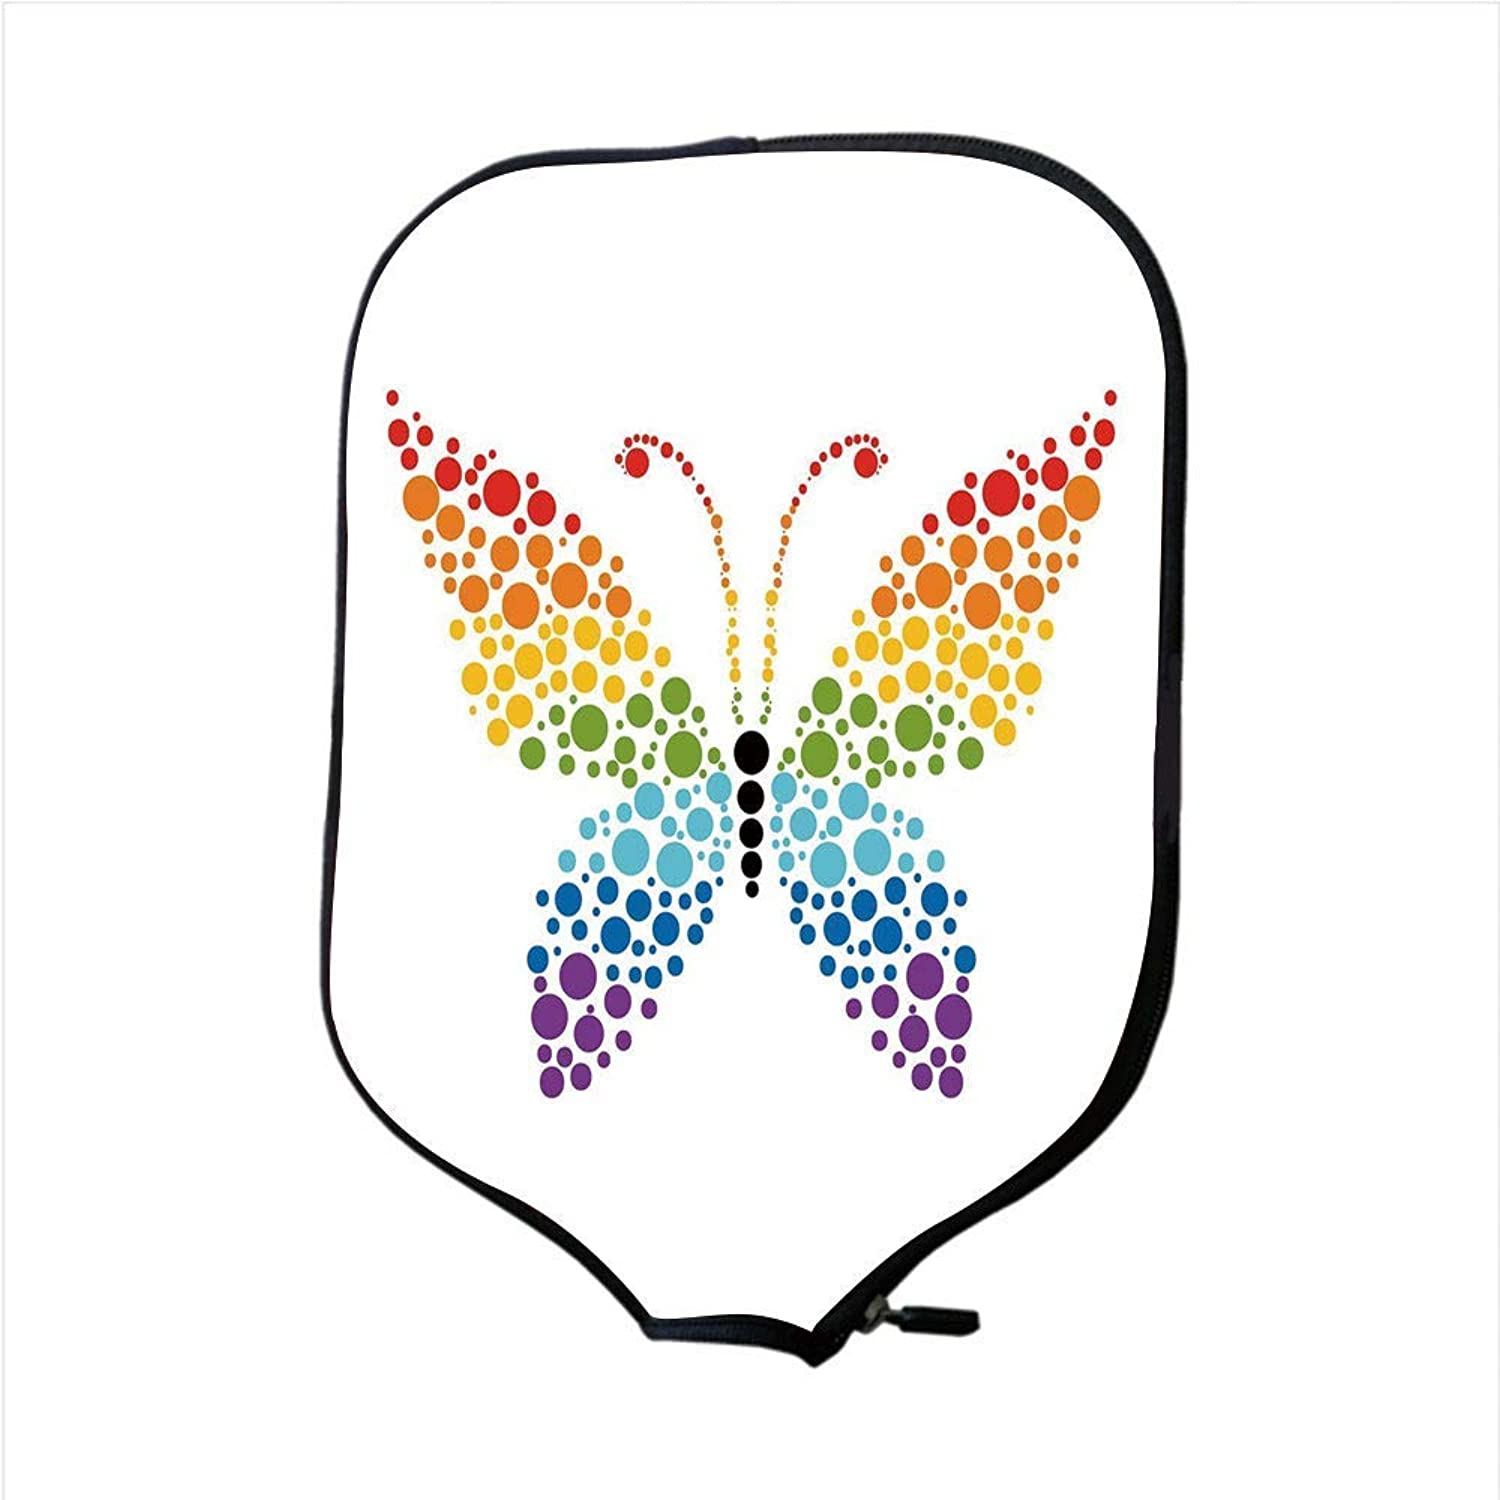 Fine Neoprene Pickleball Paddle Racket Cover Case,Rainbow,A Butterfly Made Out of Rainbow colord Dots Nature Shapes Circle Life Dot Art Decorative,Multicolor,Fit for Most Rackets